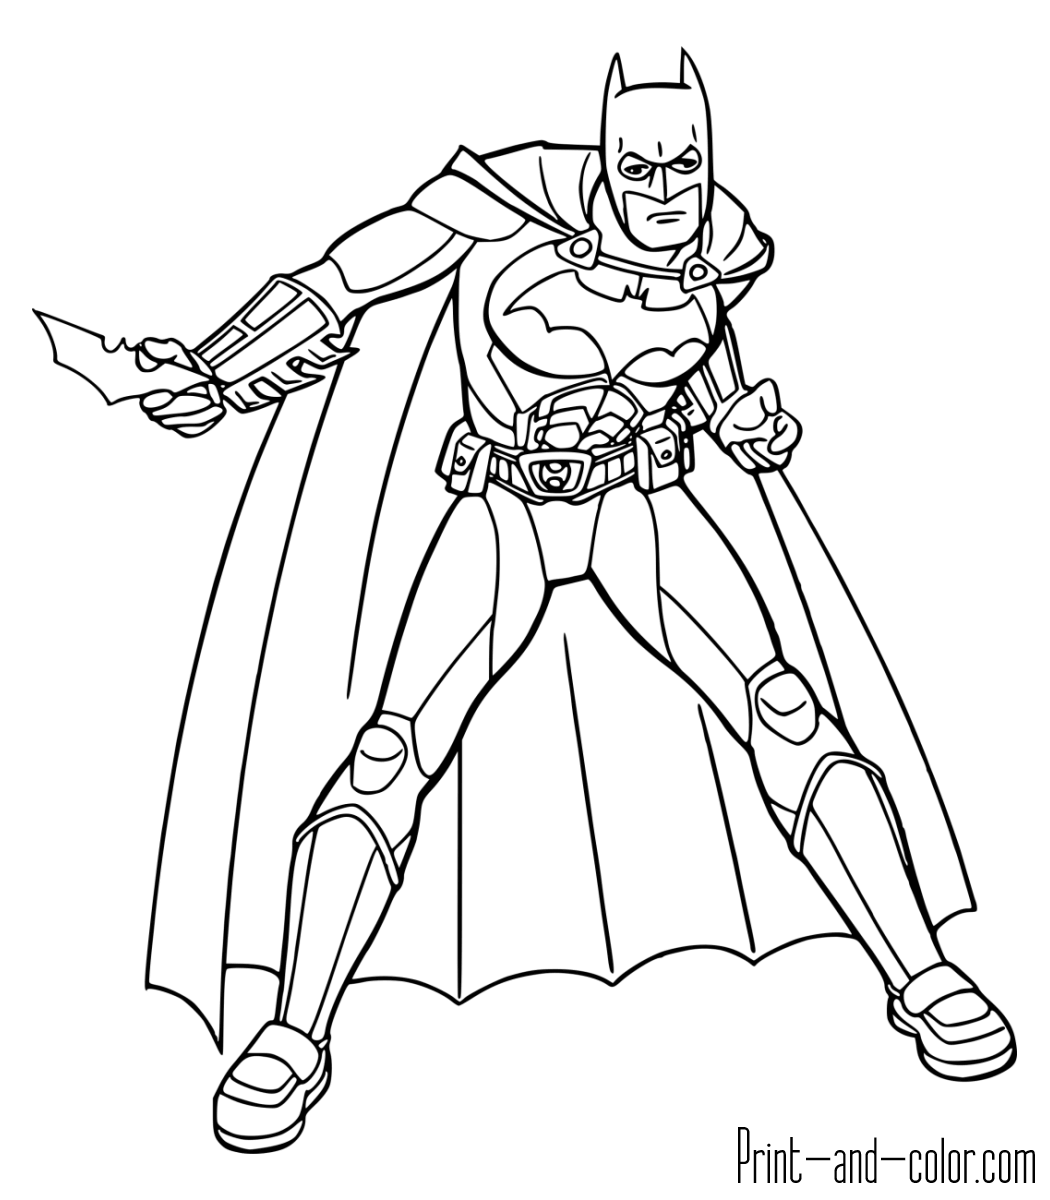 batman coloring batman and robin coloring pages to download and print for free batman coloring